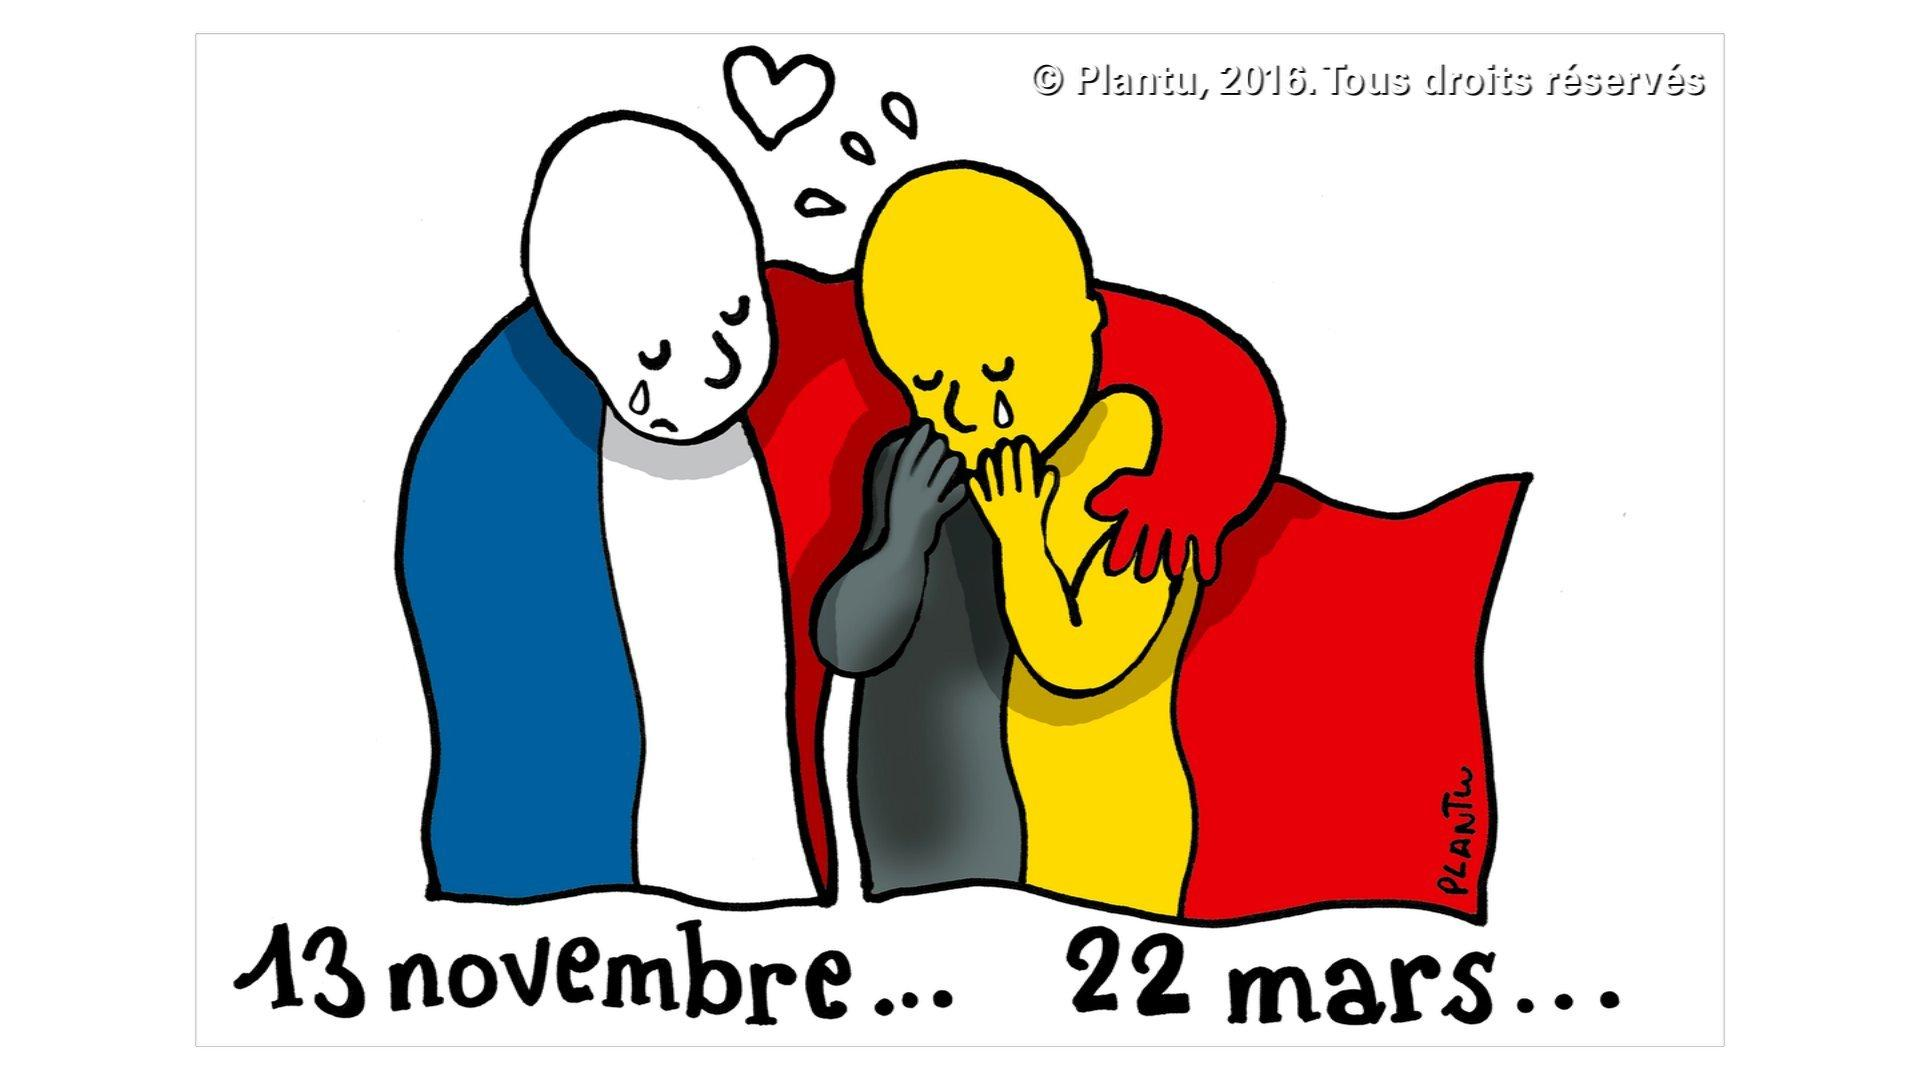 French cartoonist Jean Plantureux, who goes by Plantu, drew an emotional cartoon for French newspaper Le Monde. A crying person draped in a French flag hugs a crying person with a Belgian flag, suggesting solidarity between the two countries. The dates beneath each figure signify the November 13 Paris attacks and the March 22 Brussels attacks.